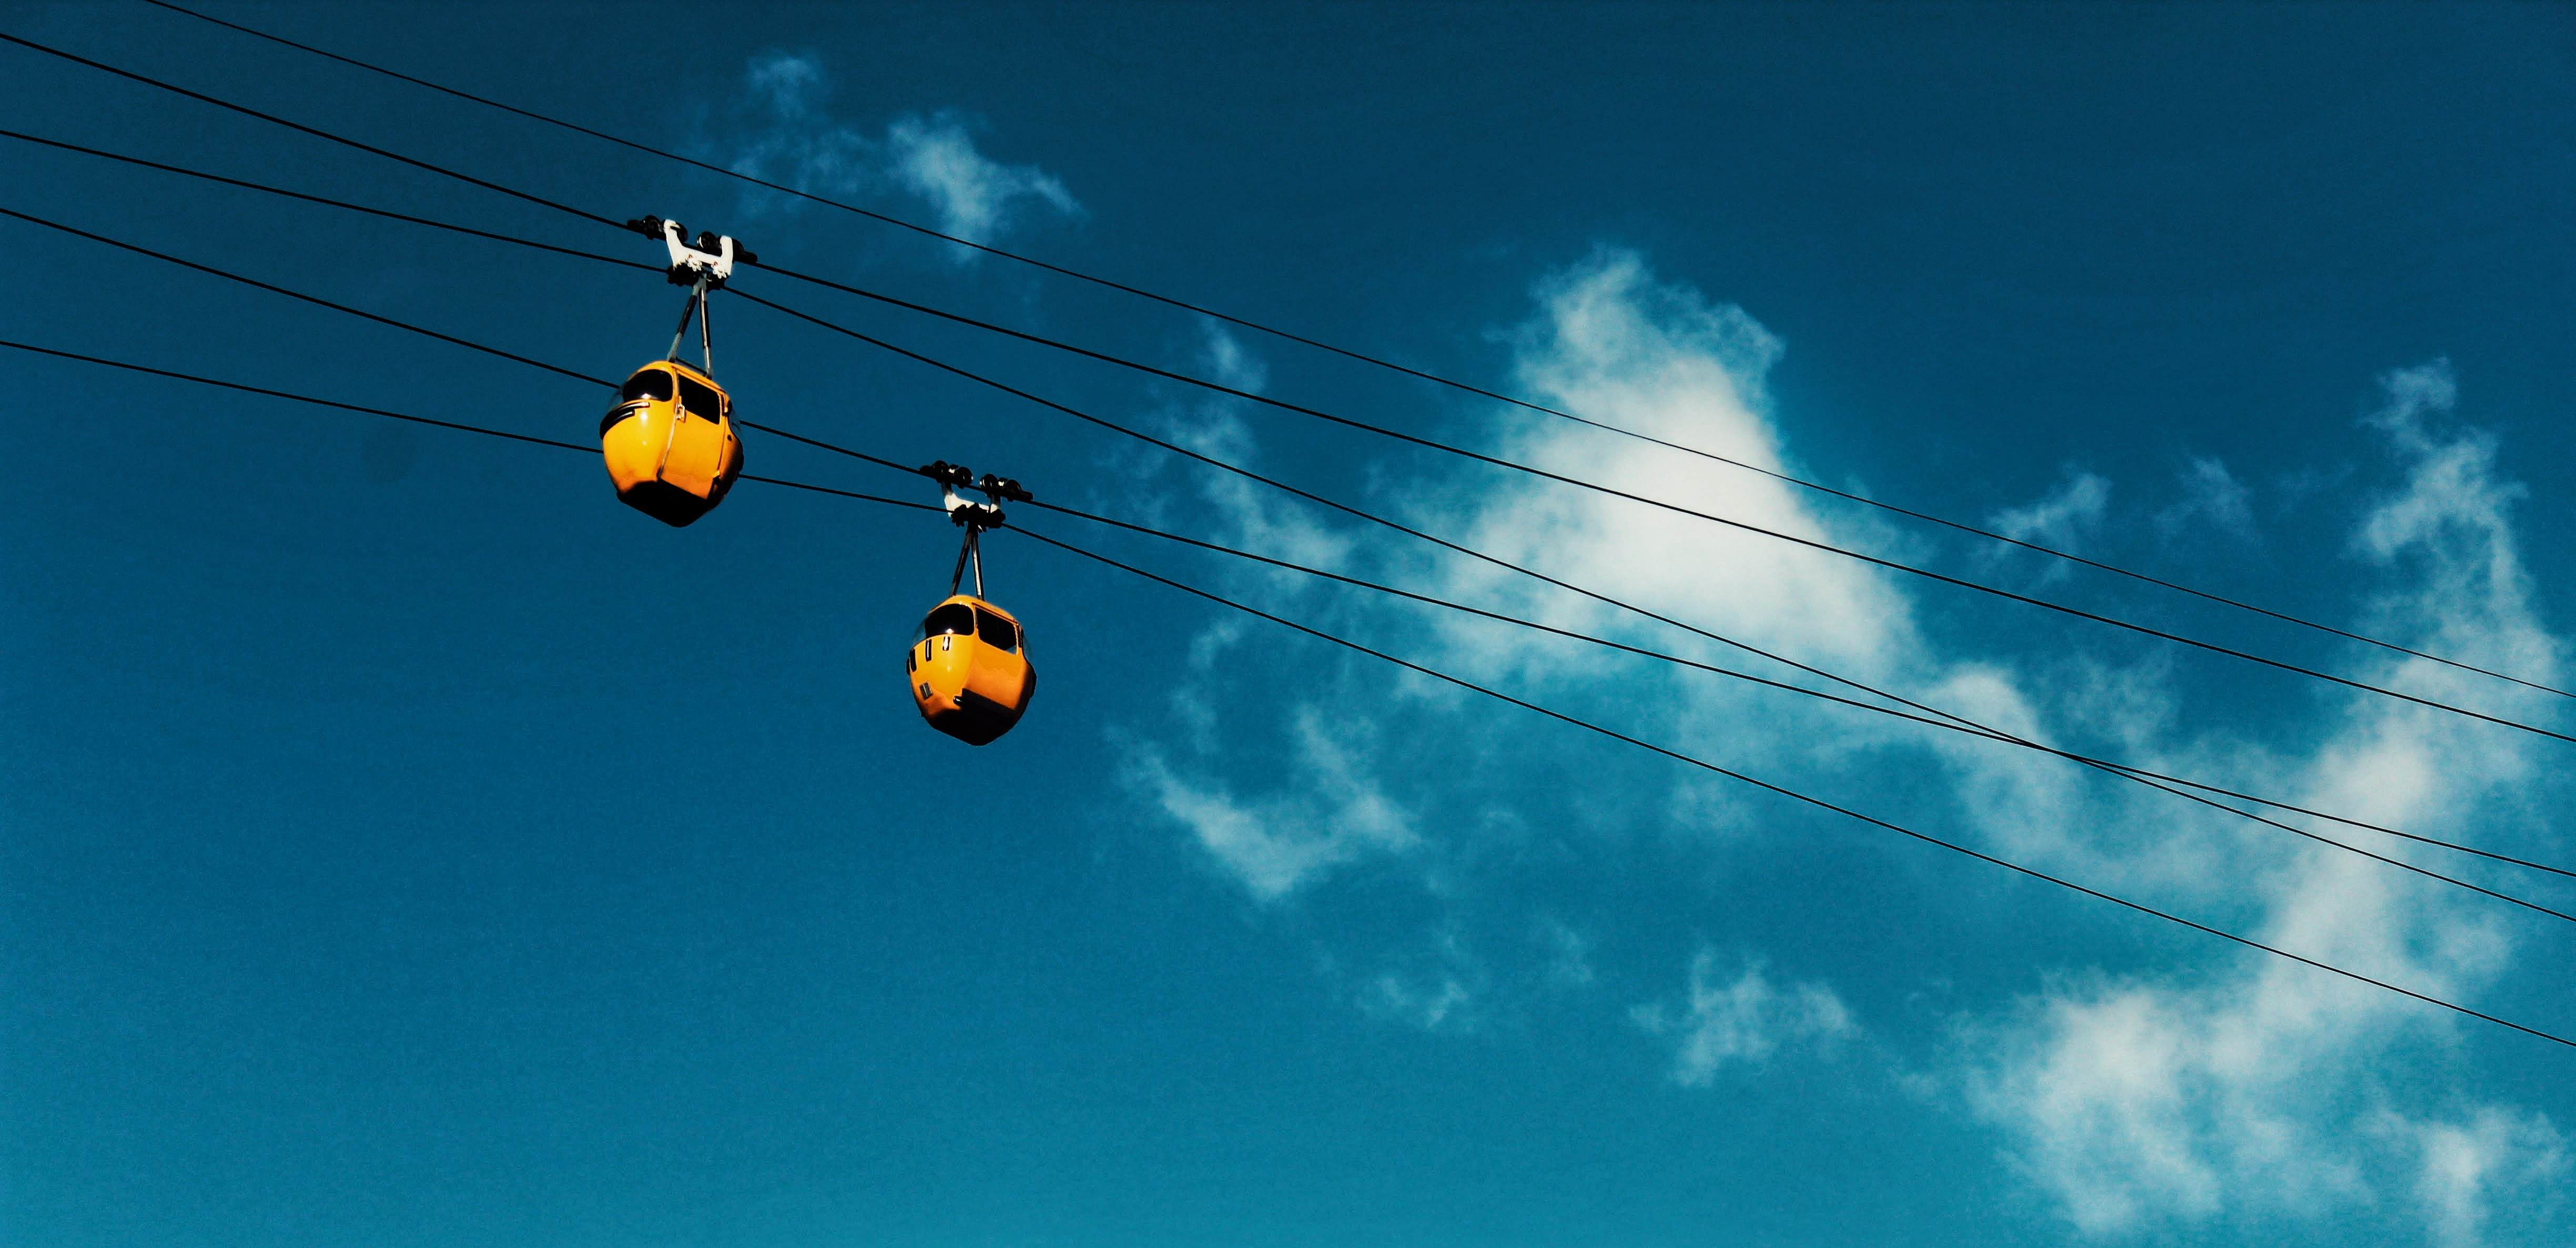 Yellow cable cars ride on wires against a blue sky